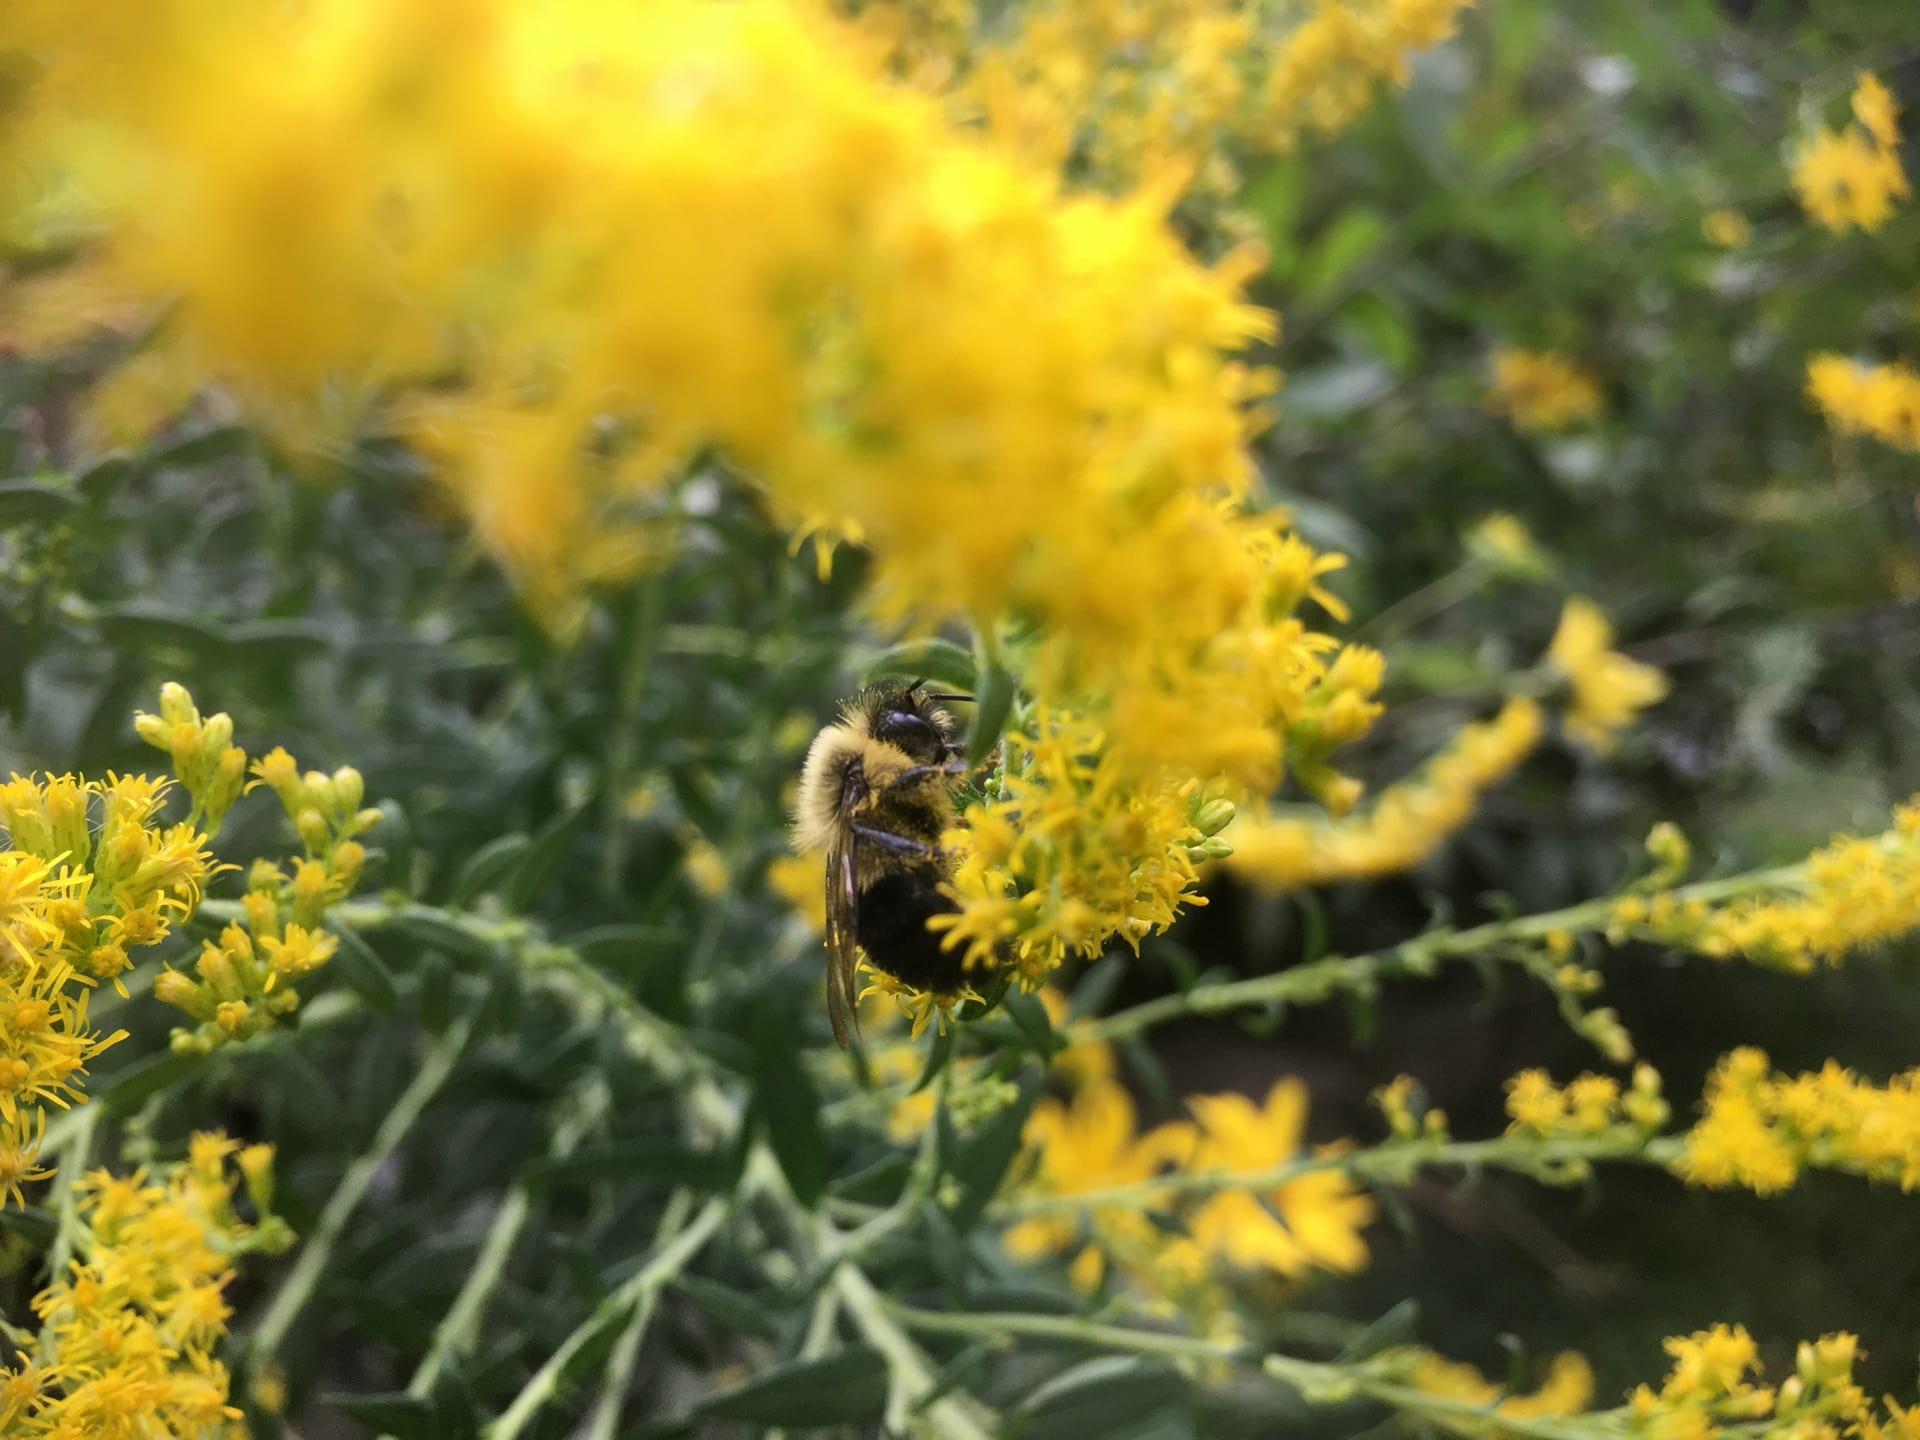 A bumble bee visits Solidago flowers.